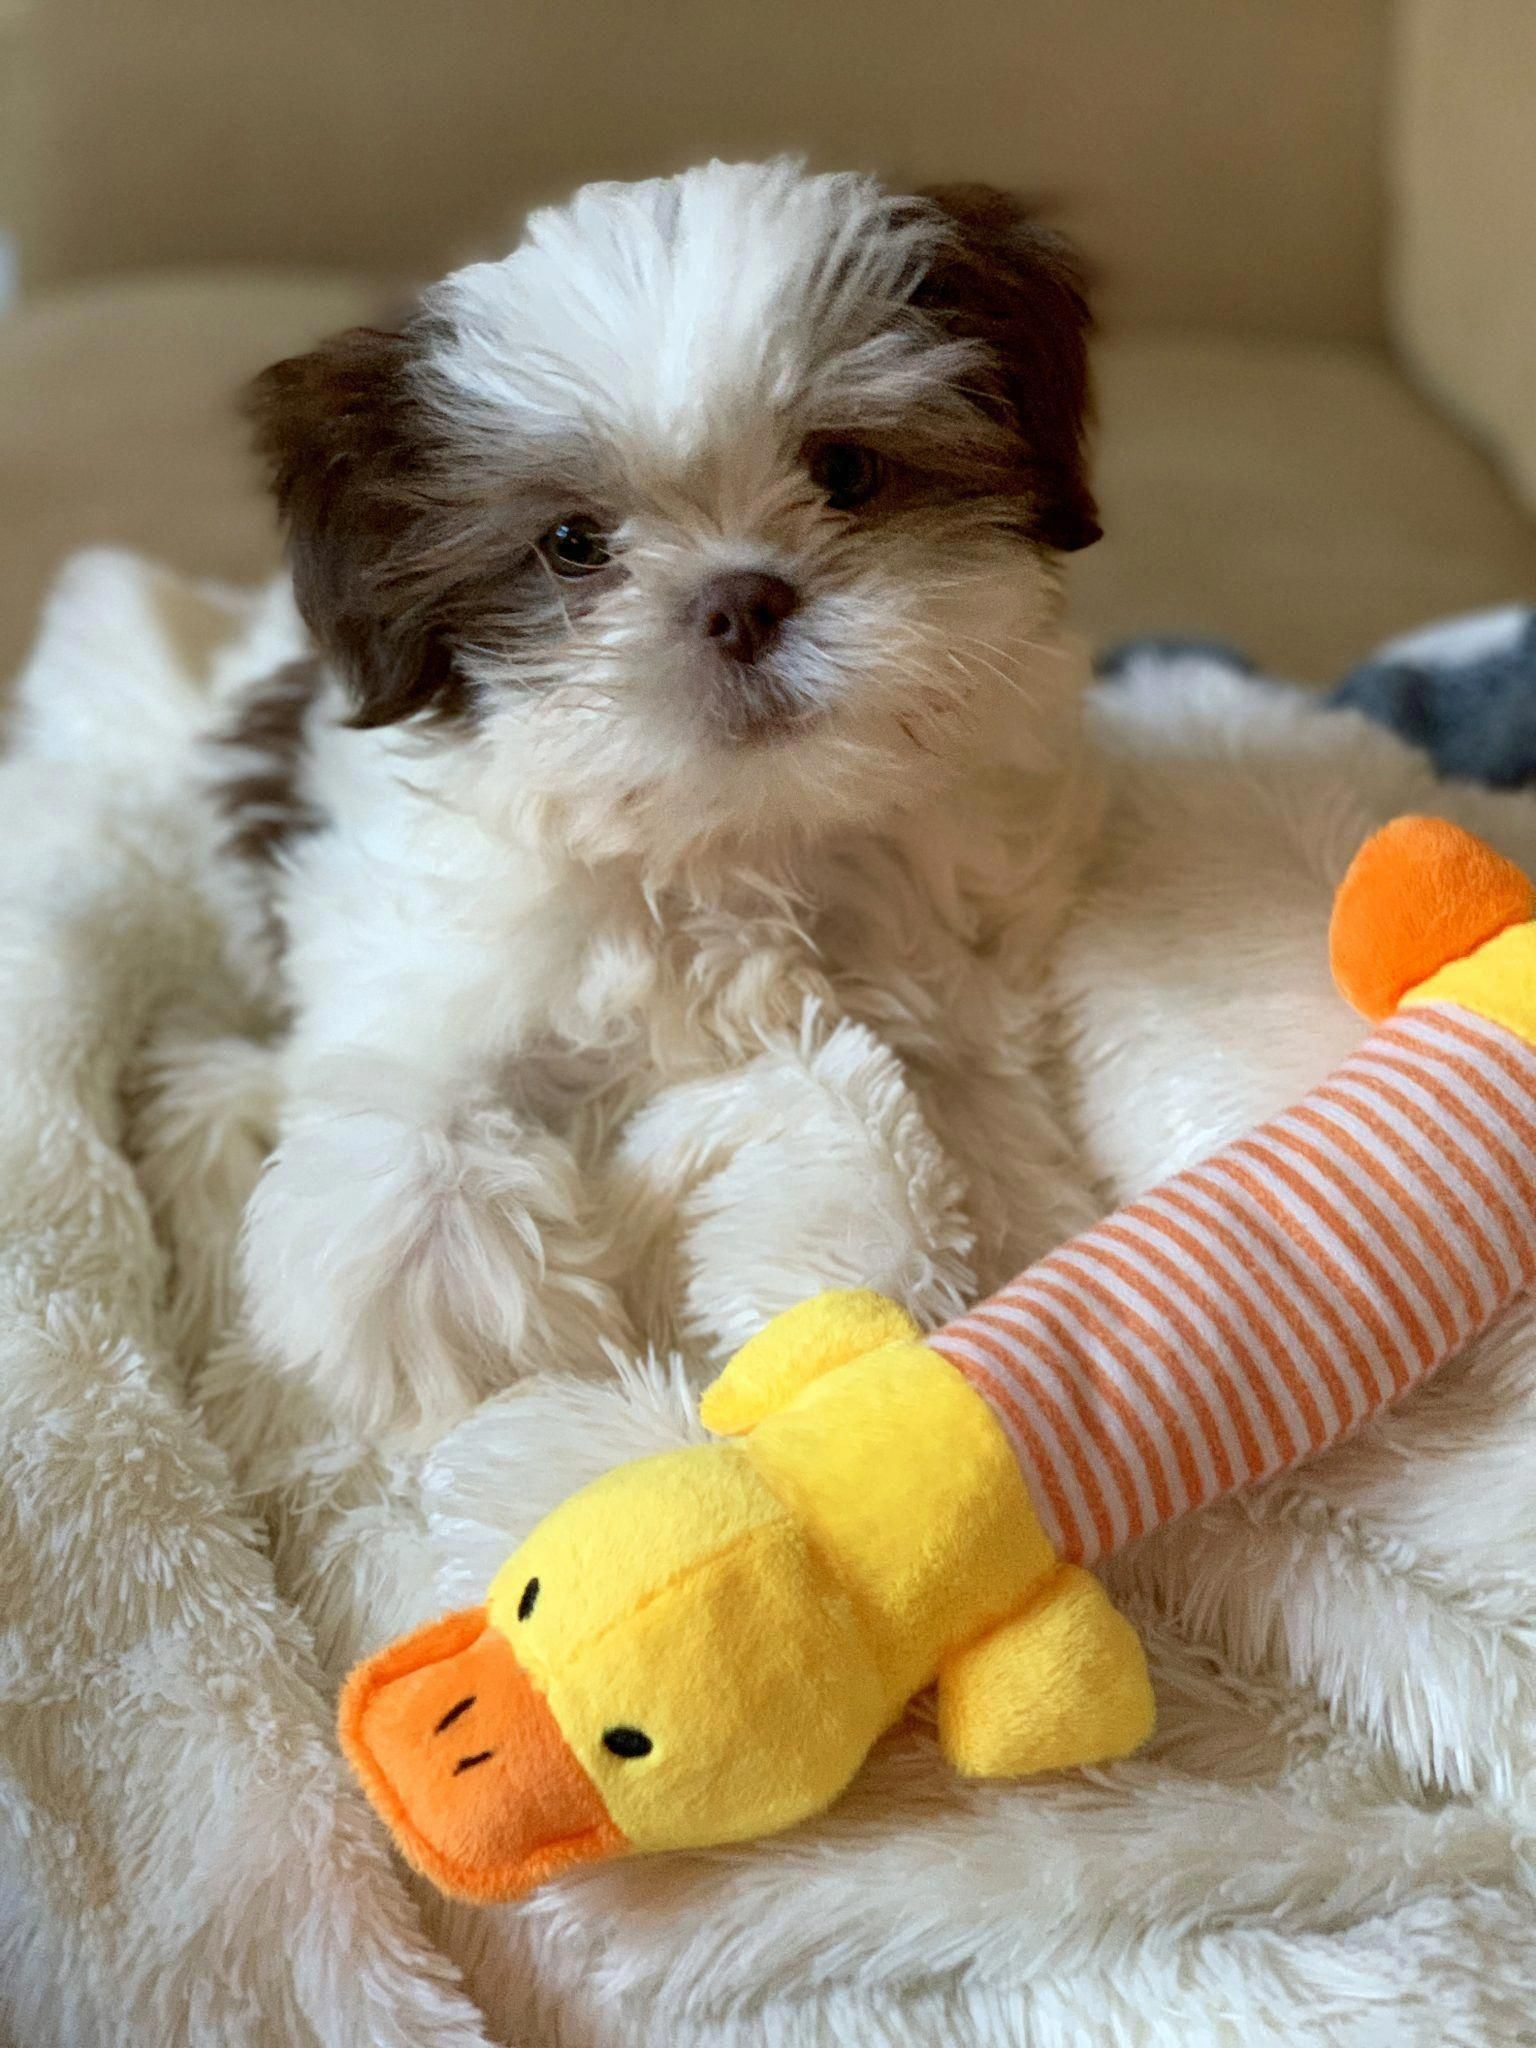 Determine More Details On Shih Tzu Dogs Browse Through Our